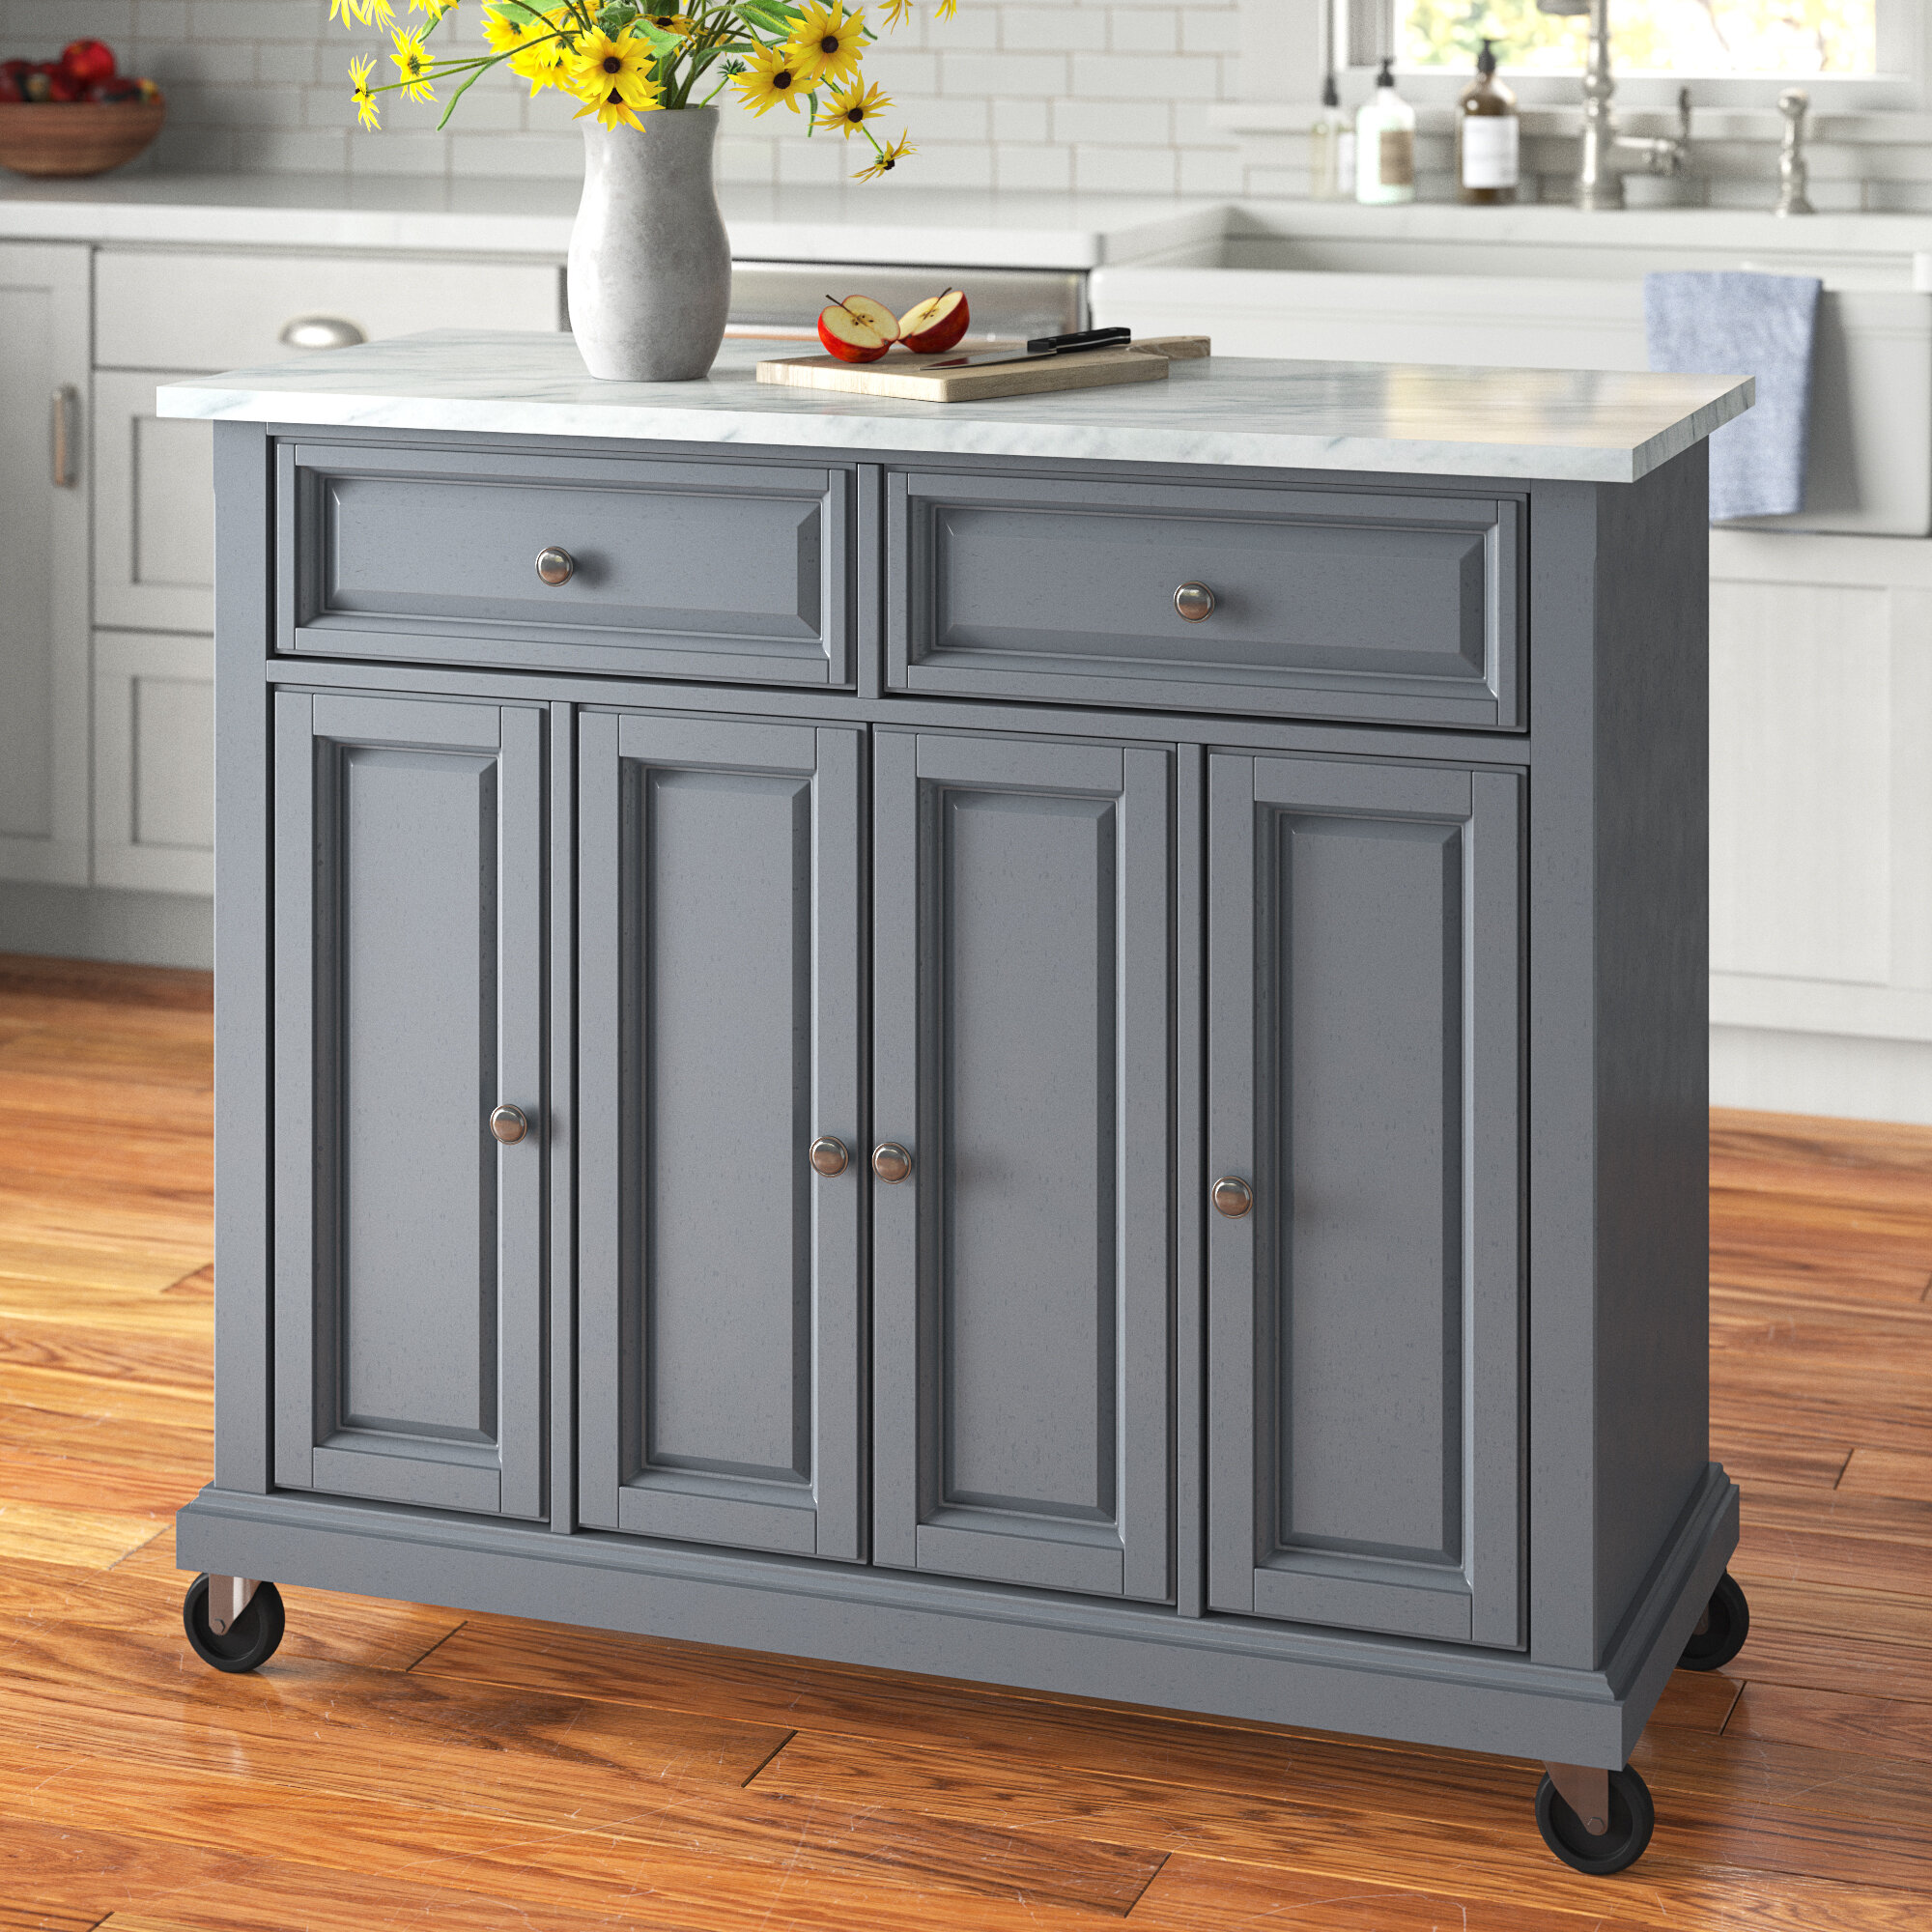 Andover Mills Moser Kitchen Island With Faux Marble Top Reviews